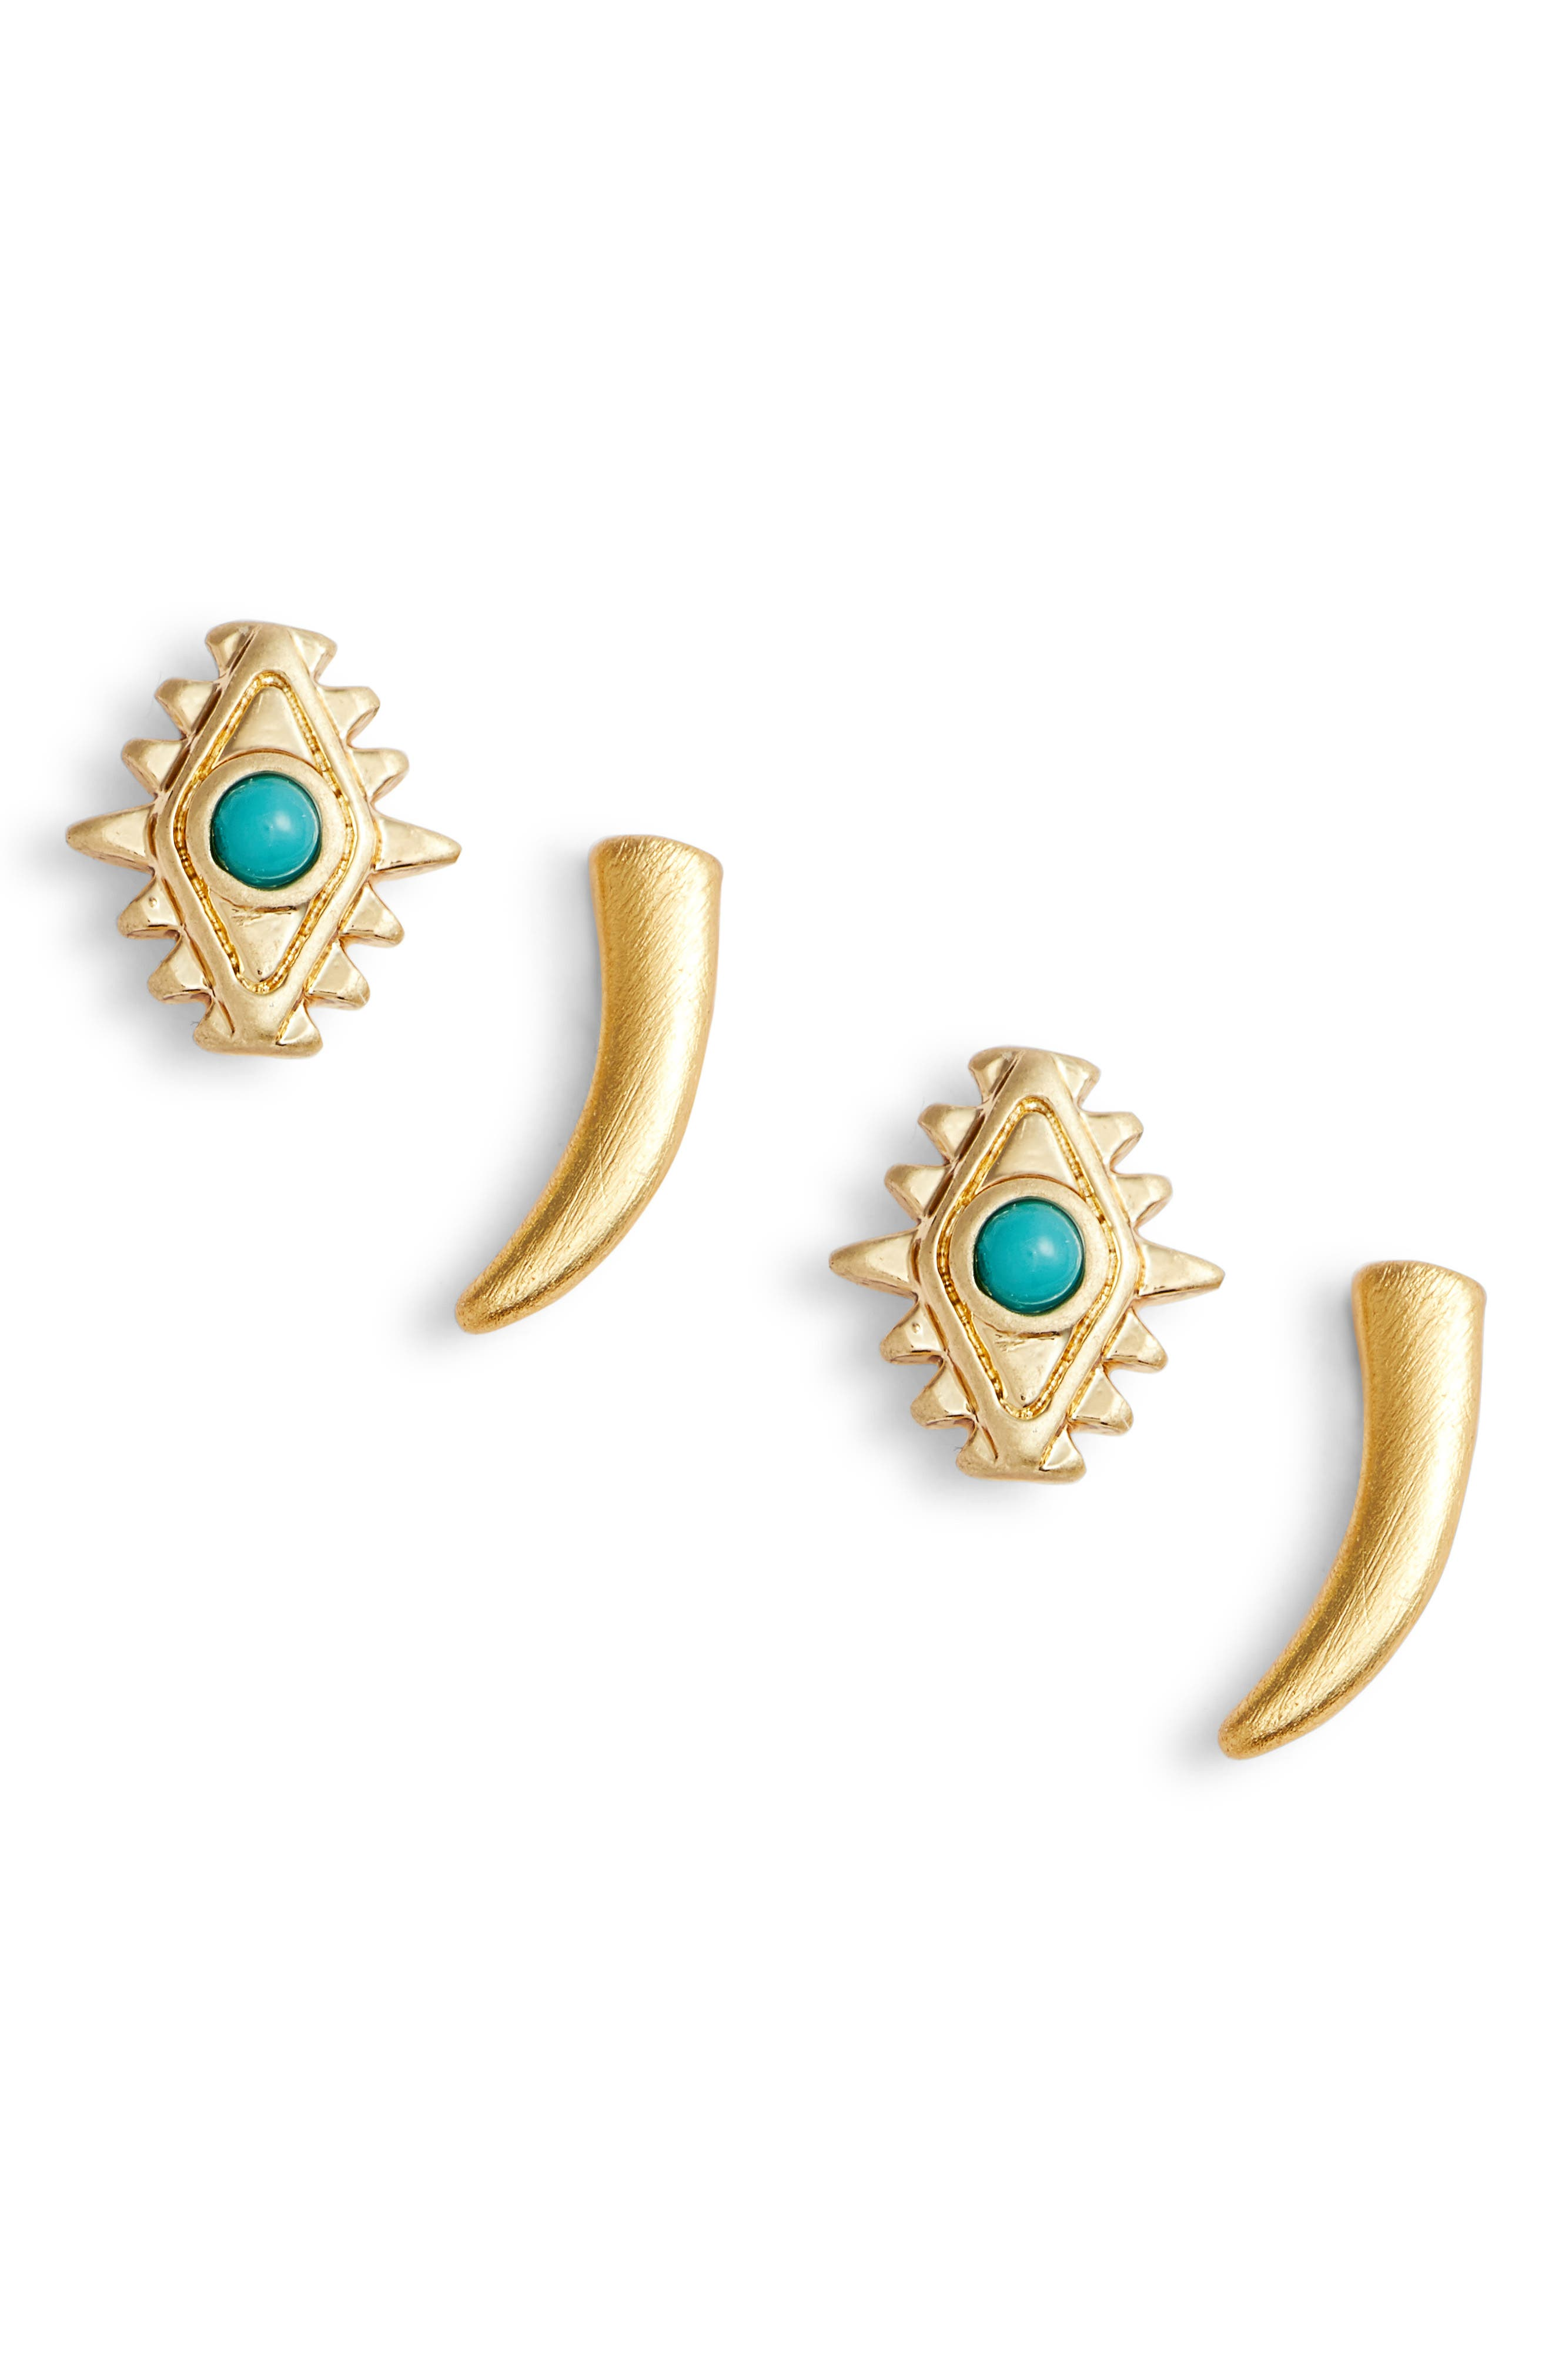 Set of 2 Stud Earrings,                         Main,                         color, Gold